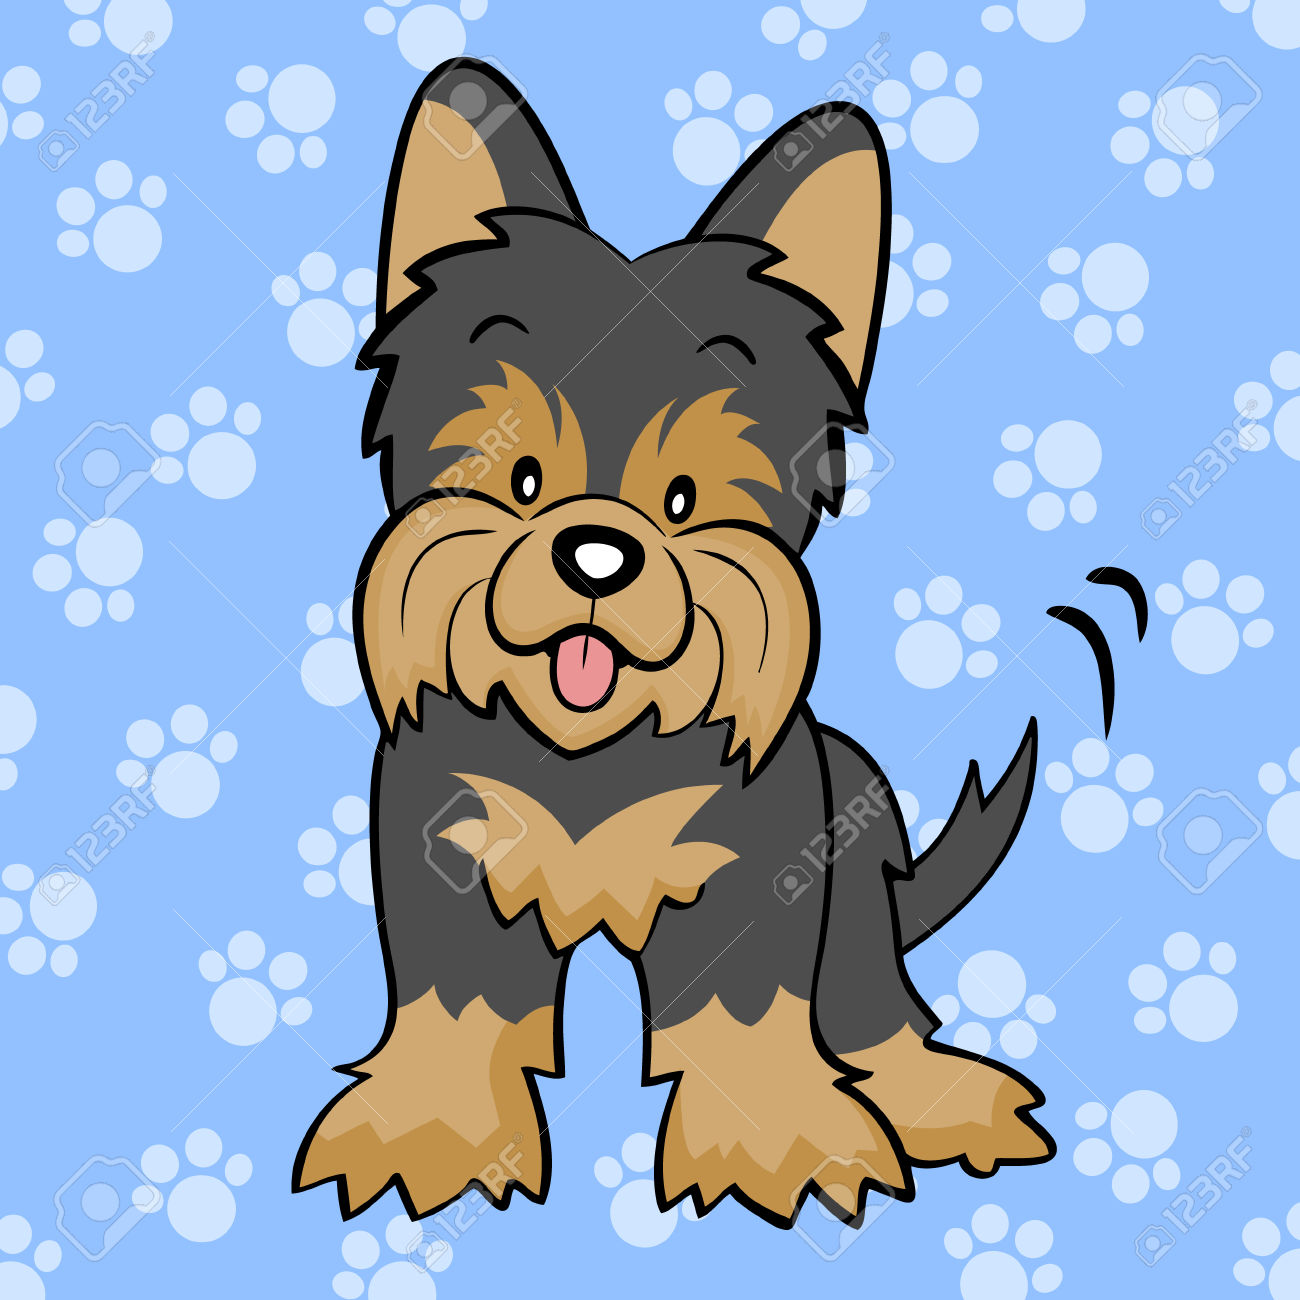 Yorkies clipart poodle Terrier Yorkie: animated  dog